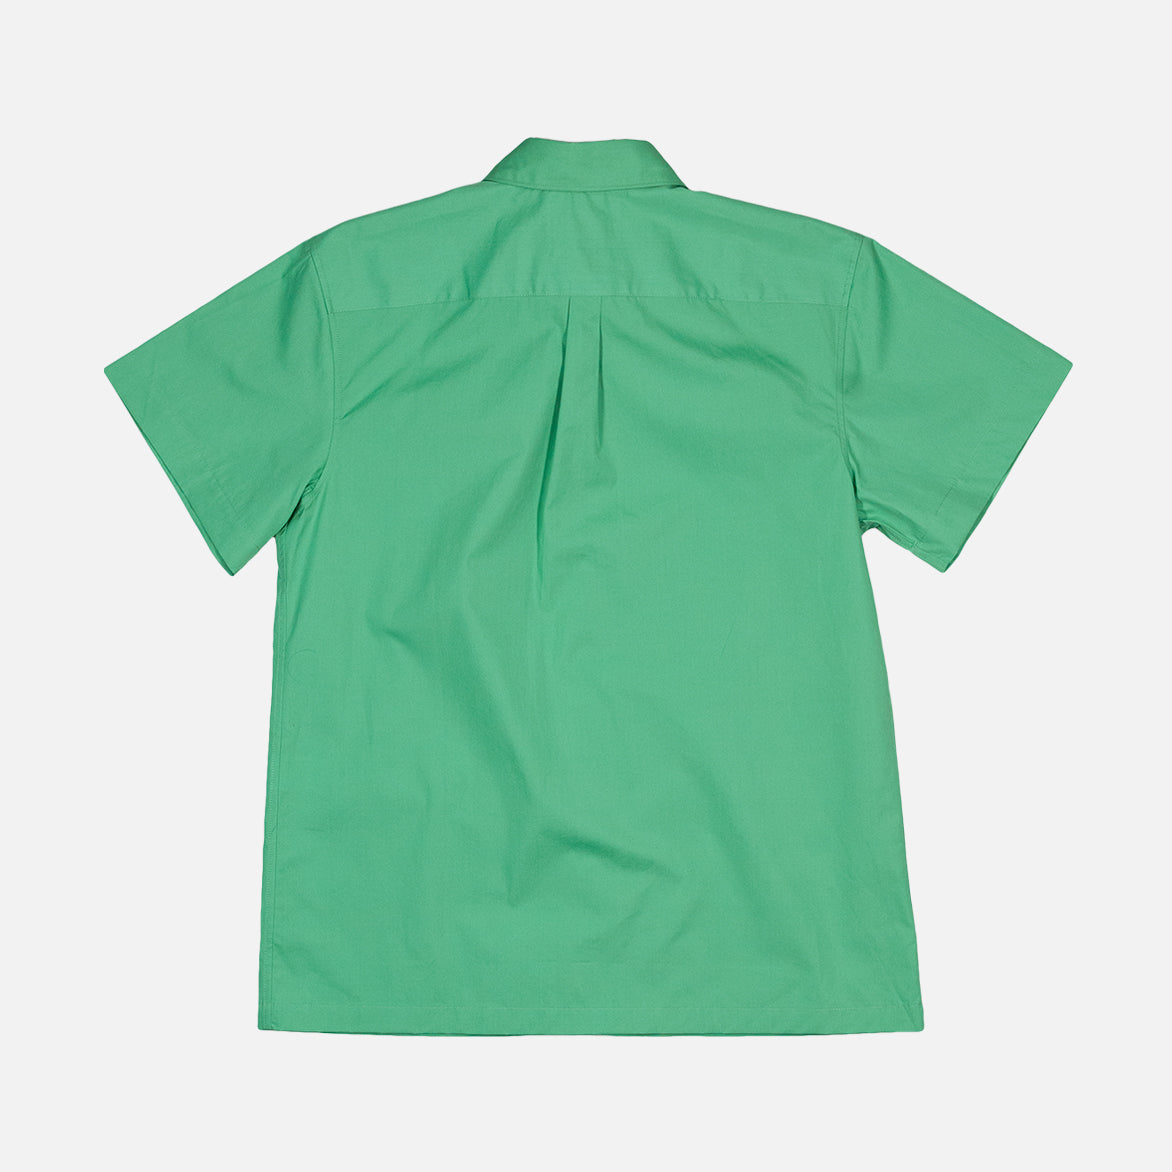 CIPPI SHORT SLEEVE WOVEN - LIGHT KHAKI